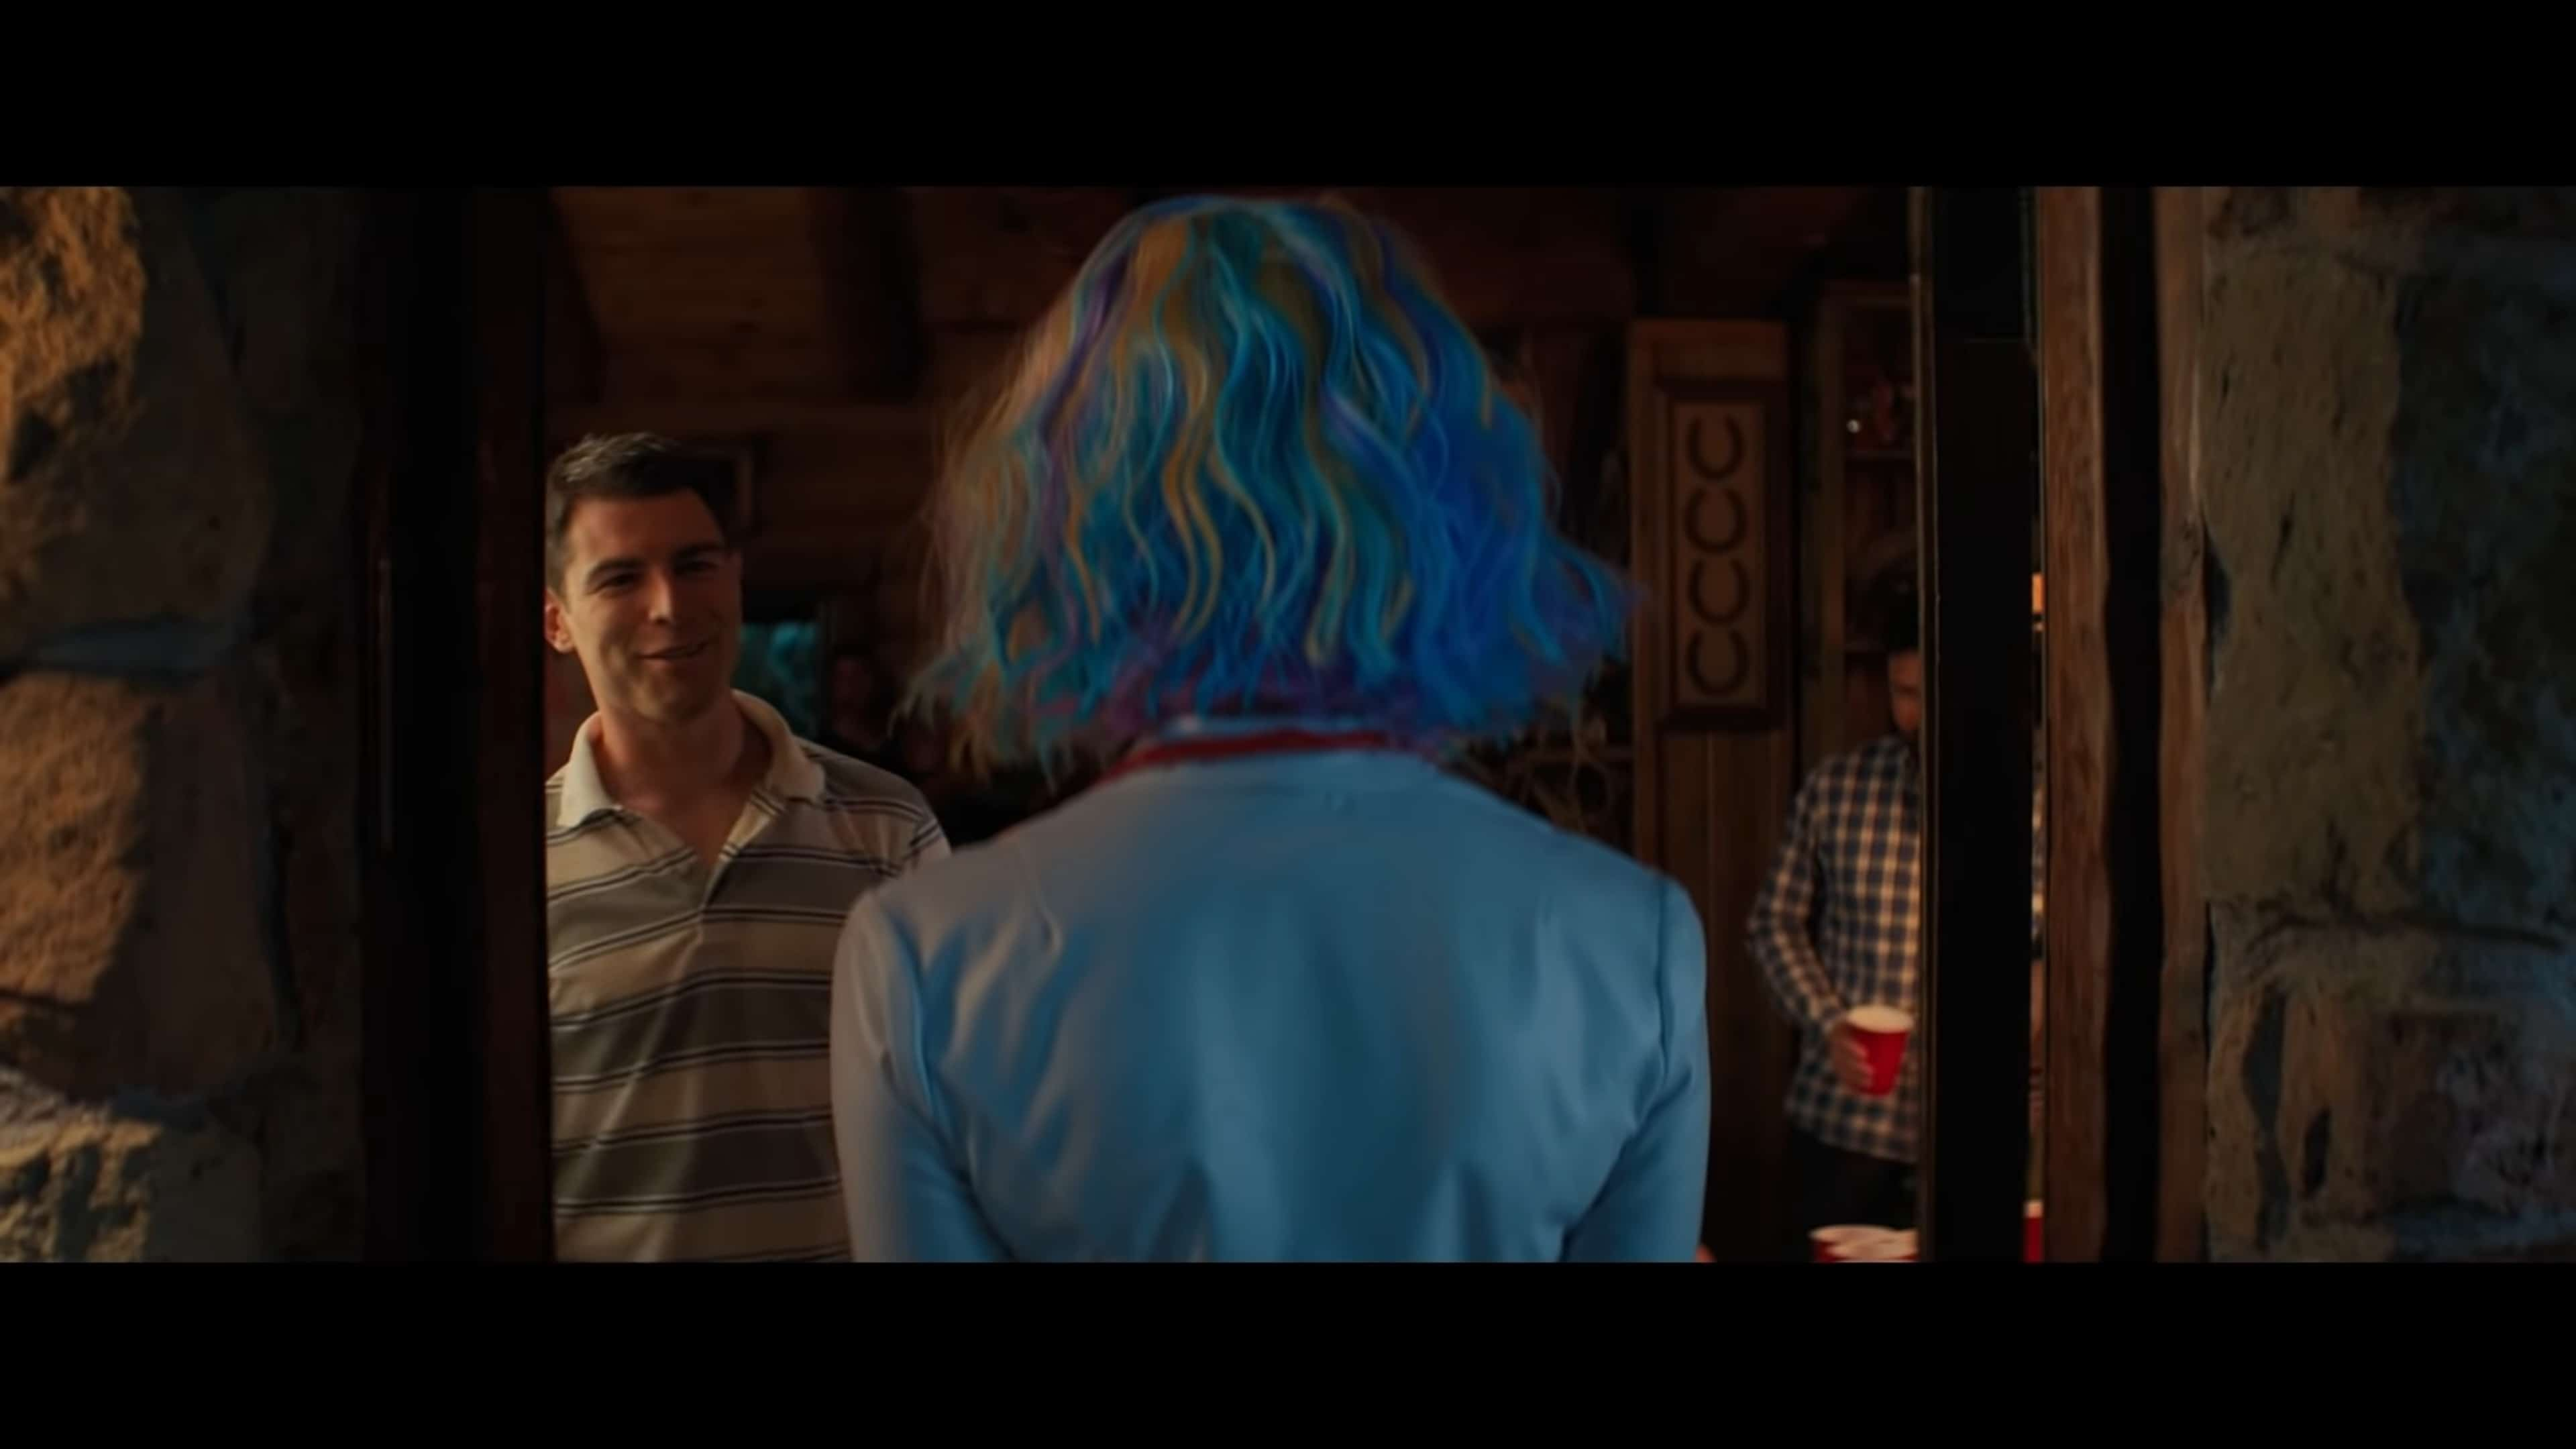 https://wherever-i-look.com/wp-content/uploads/2020/12/Joe-Max-Greenfield-Promising-Young-Woman.jpg